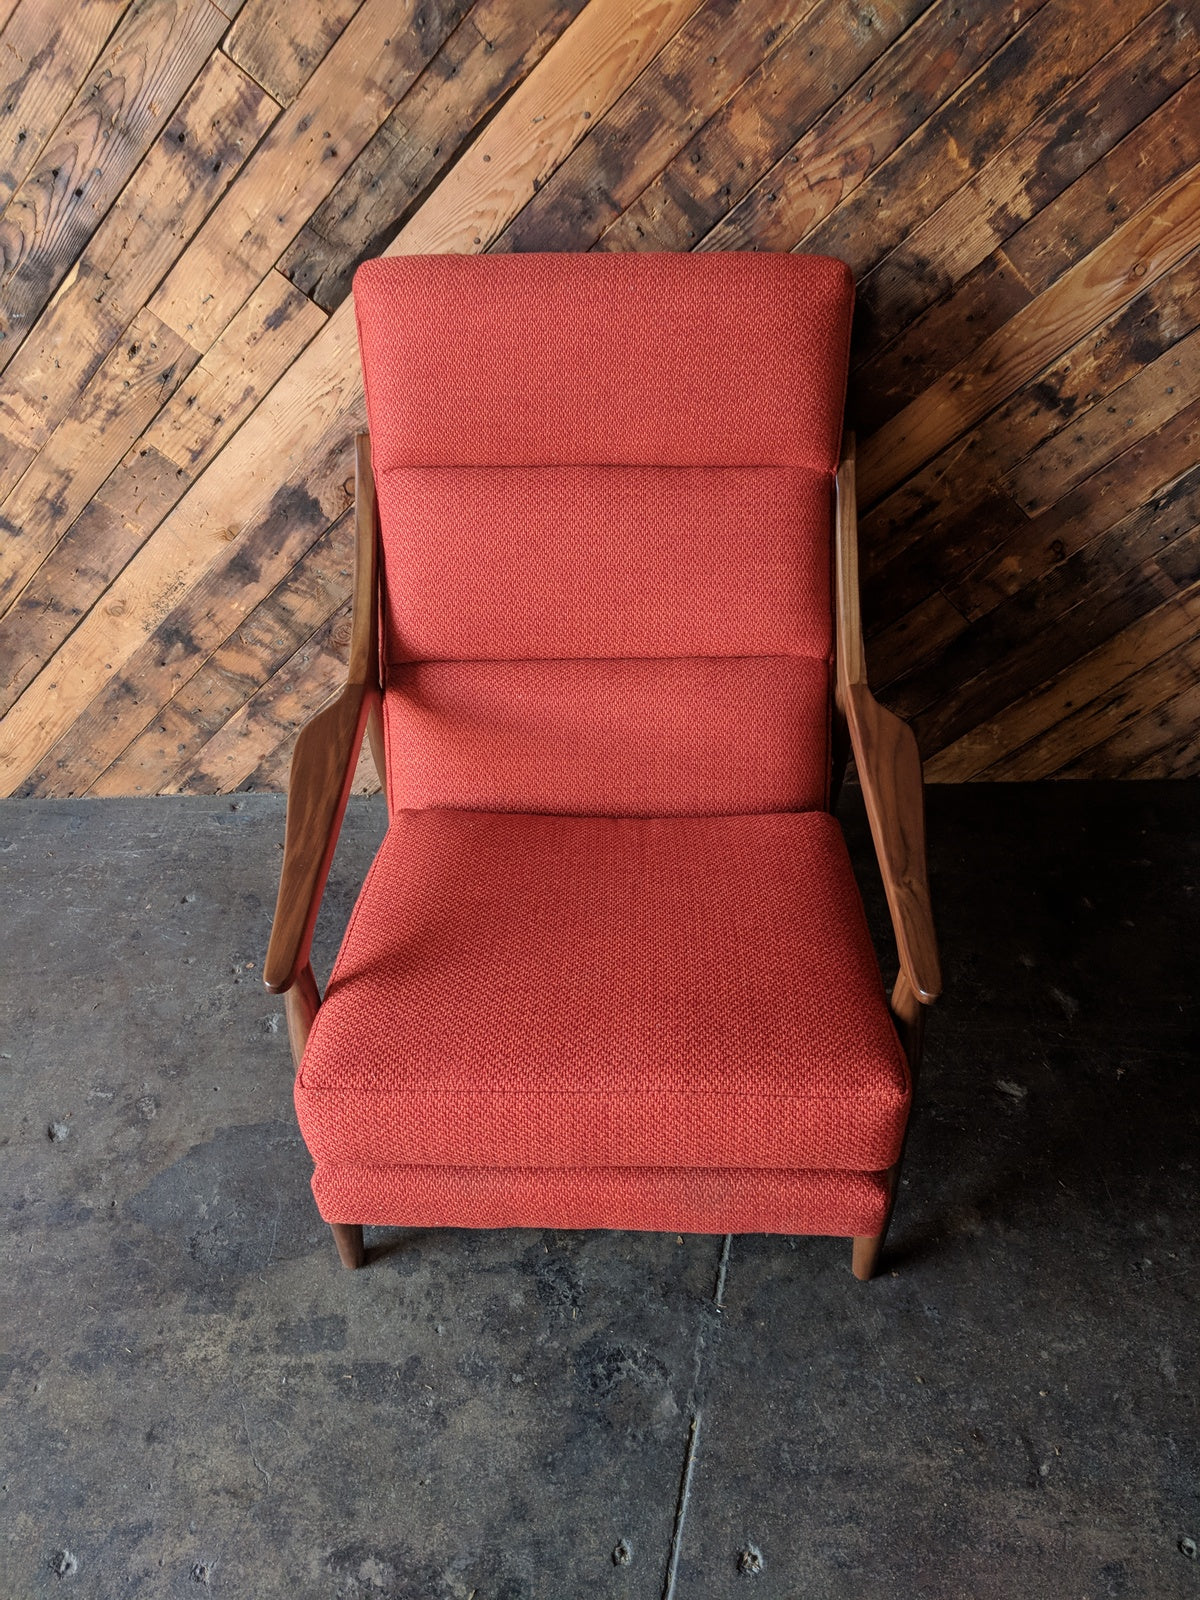 Custom Danish Mid Century Style Lounge Chair